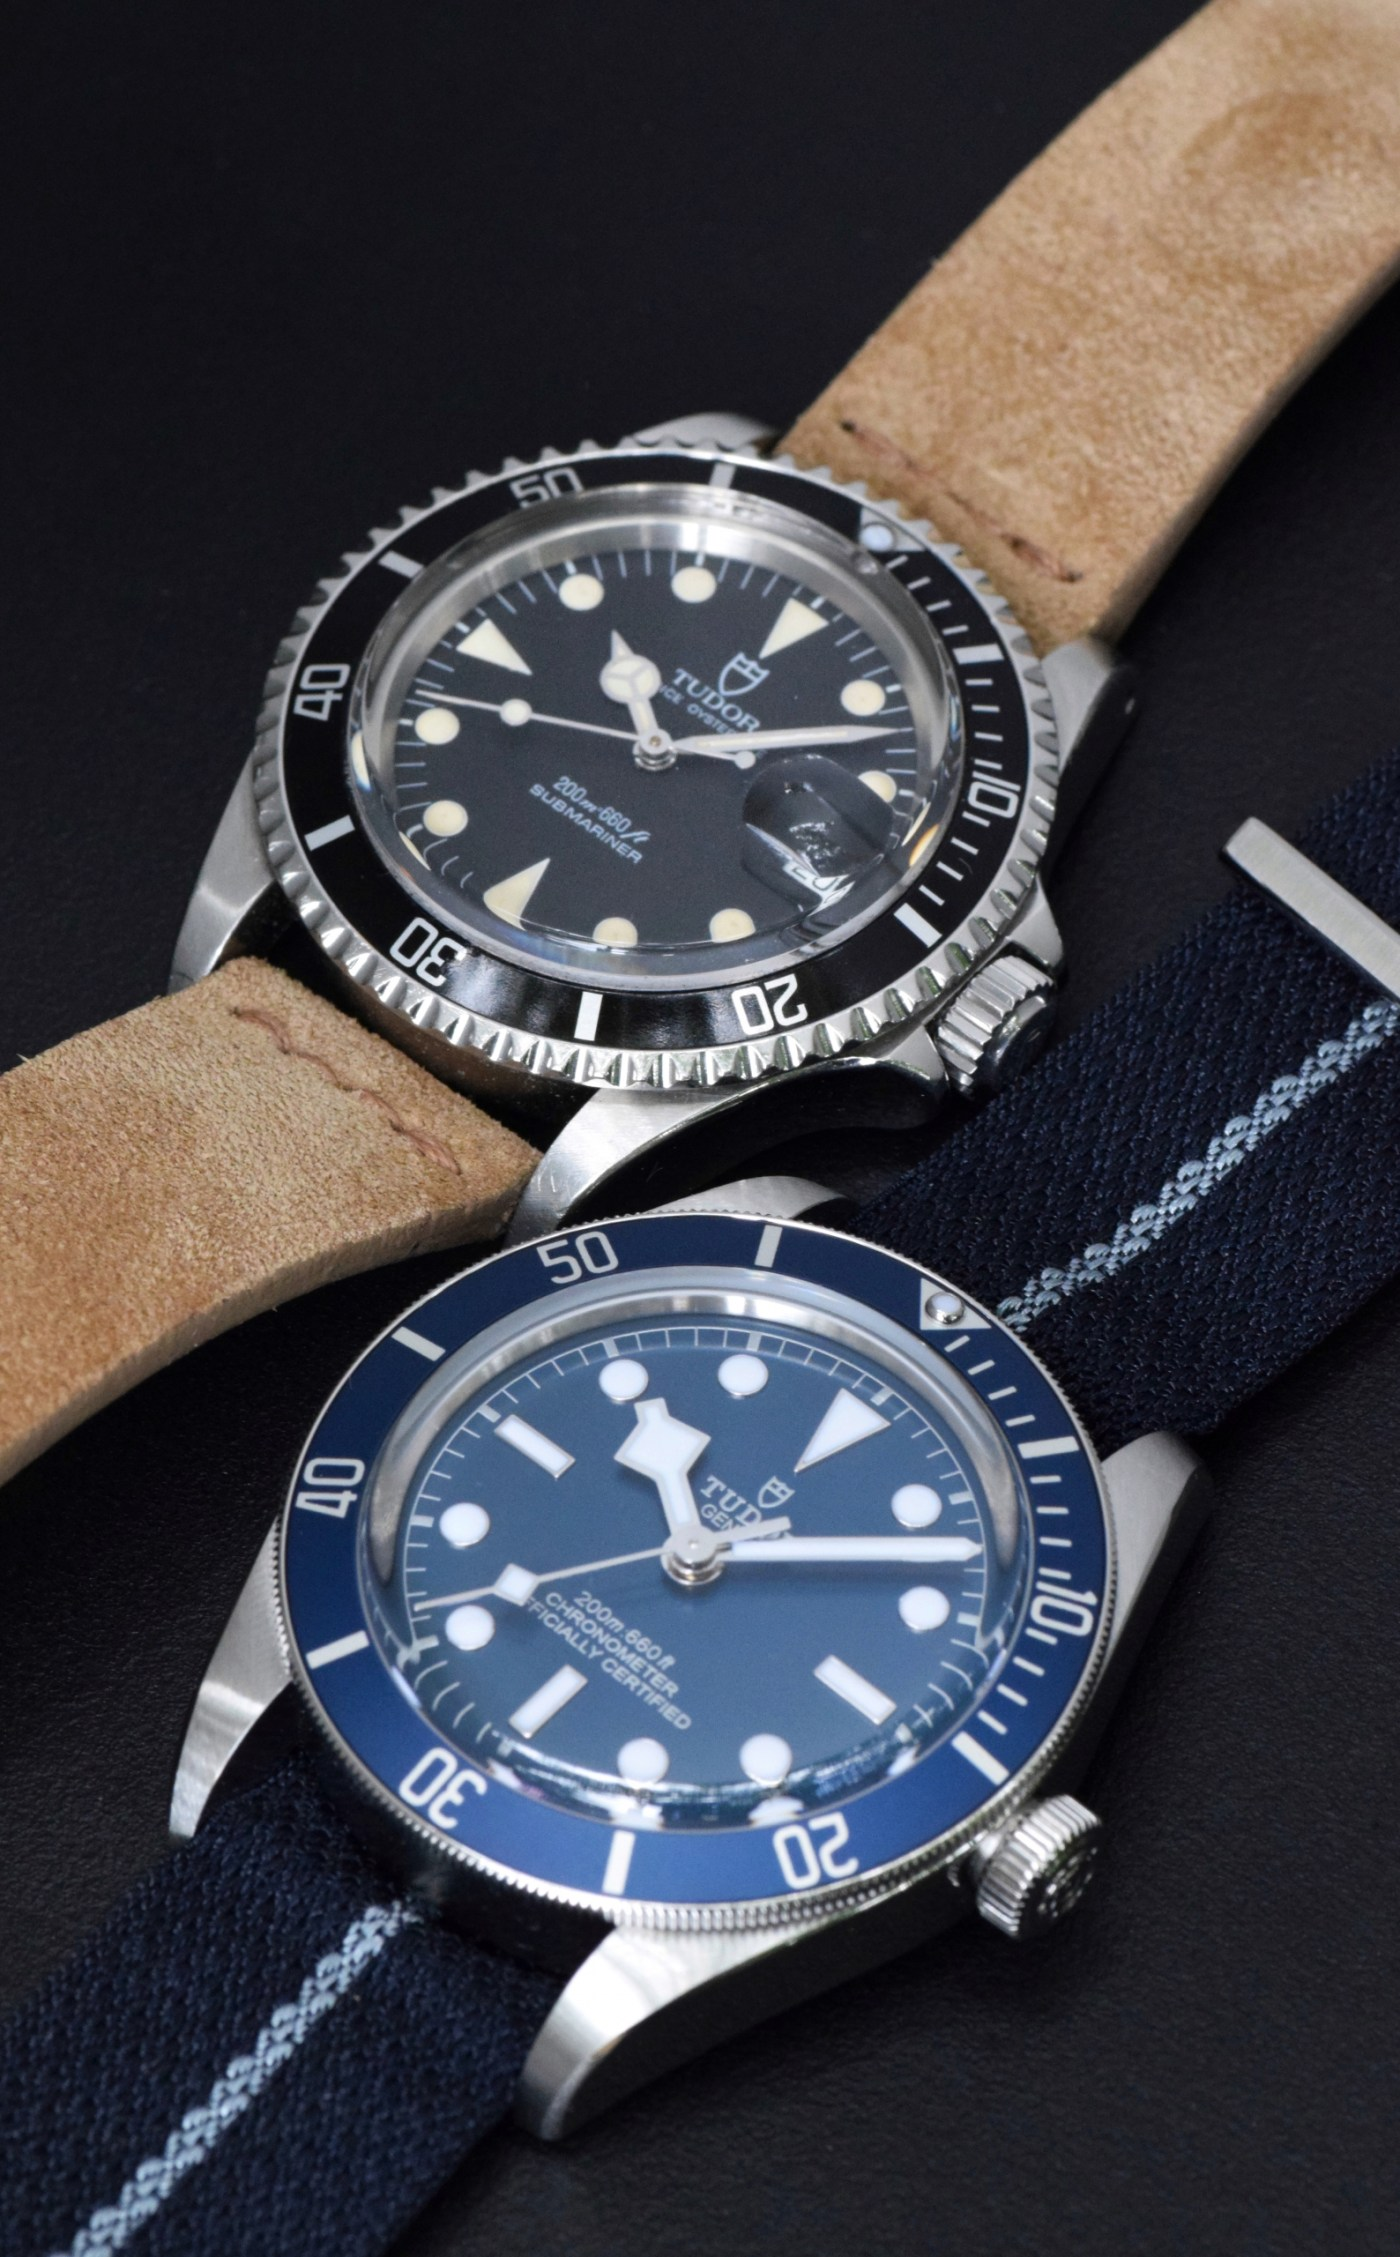 Tudor Black Bay Fifty-Eight Navy Blue Ref. 79030B vs. 1992 Tudor Submariner Ref. 79090